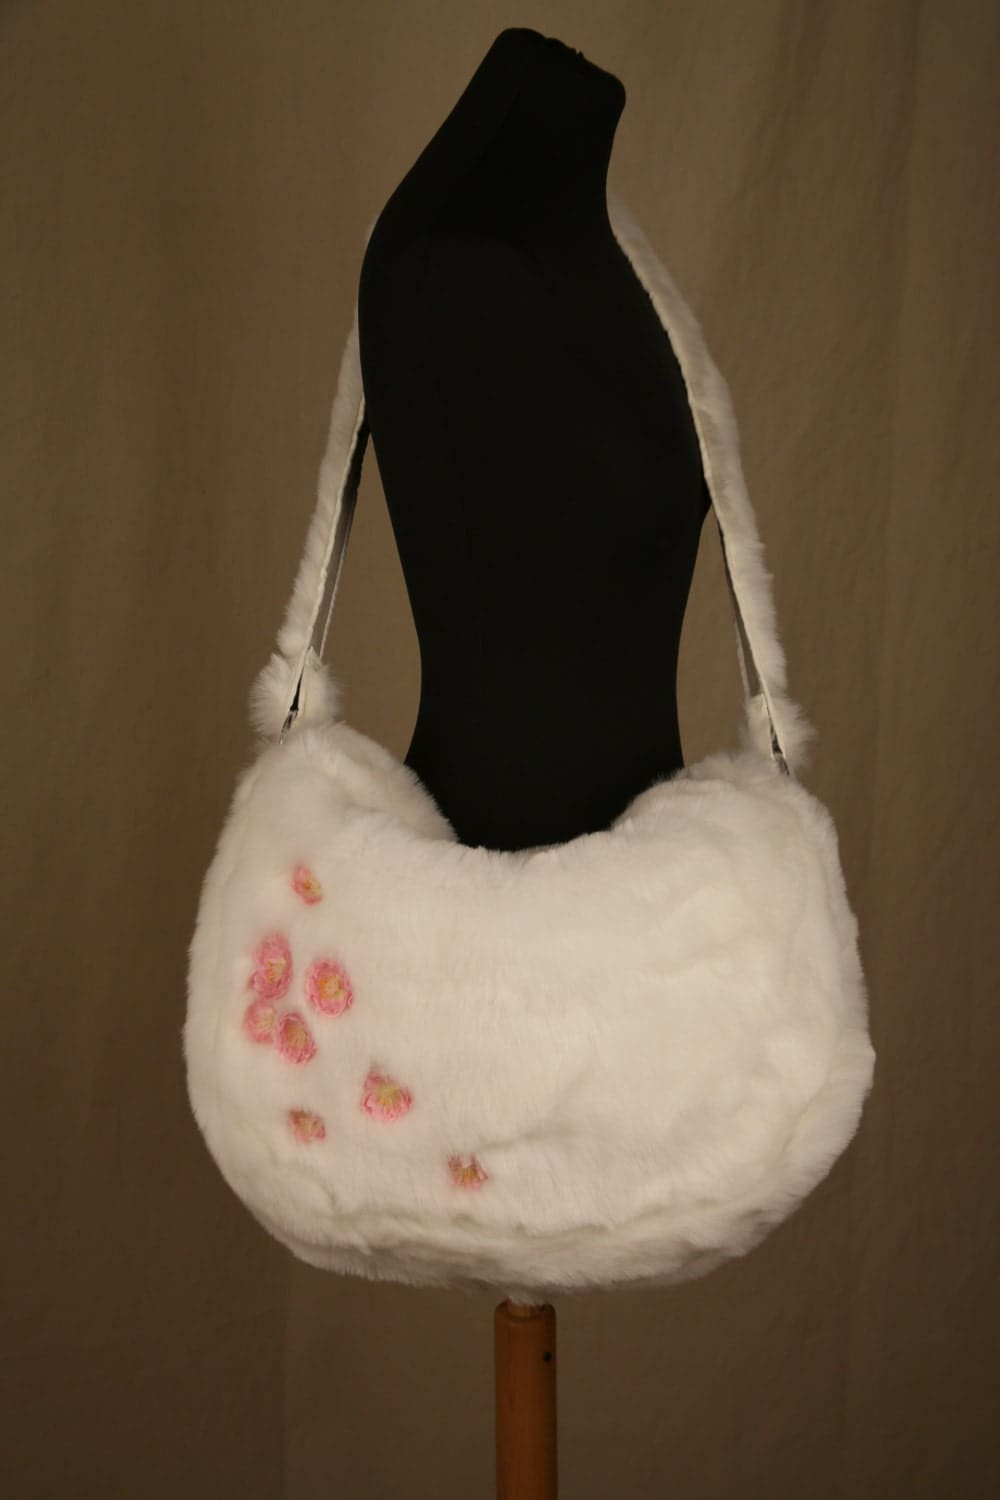 Bespoke Faux Fur Messenger Bag winter white with pink fabric flowers by Zebraskins